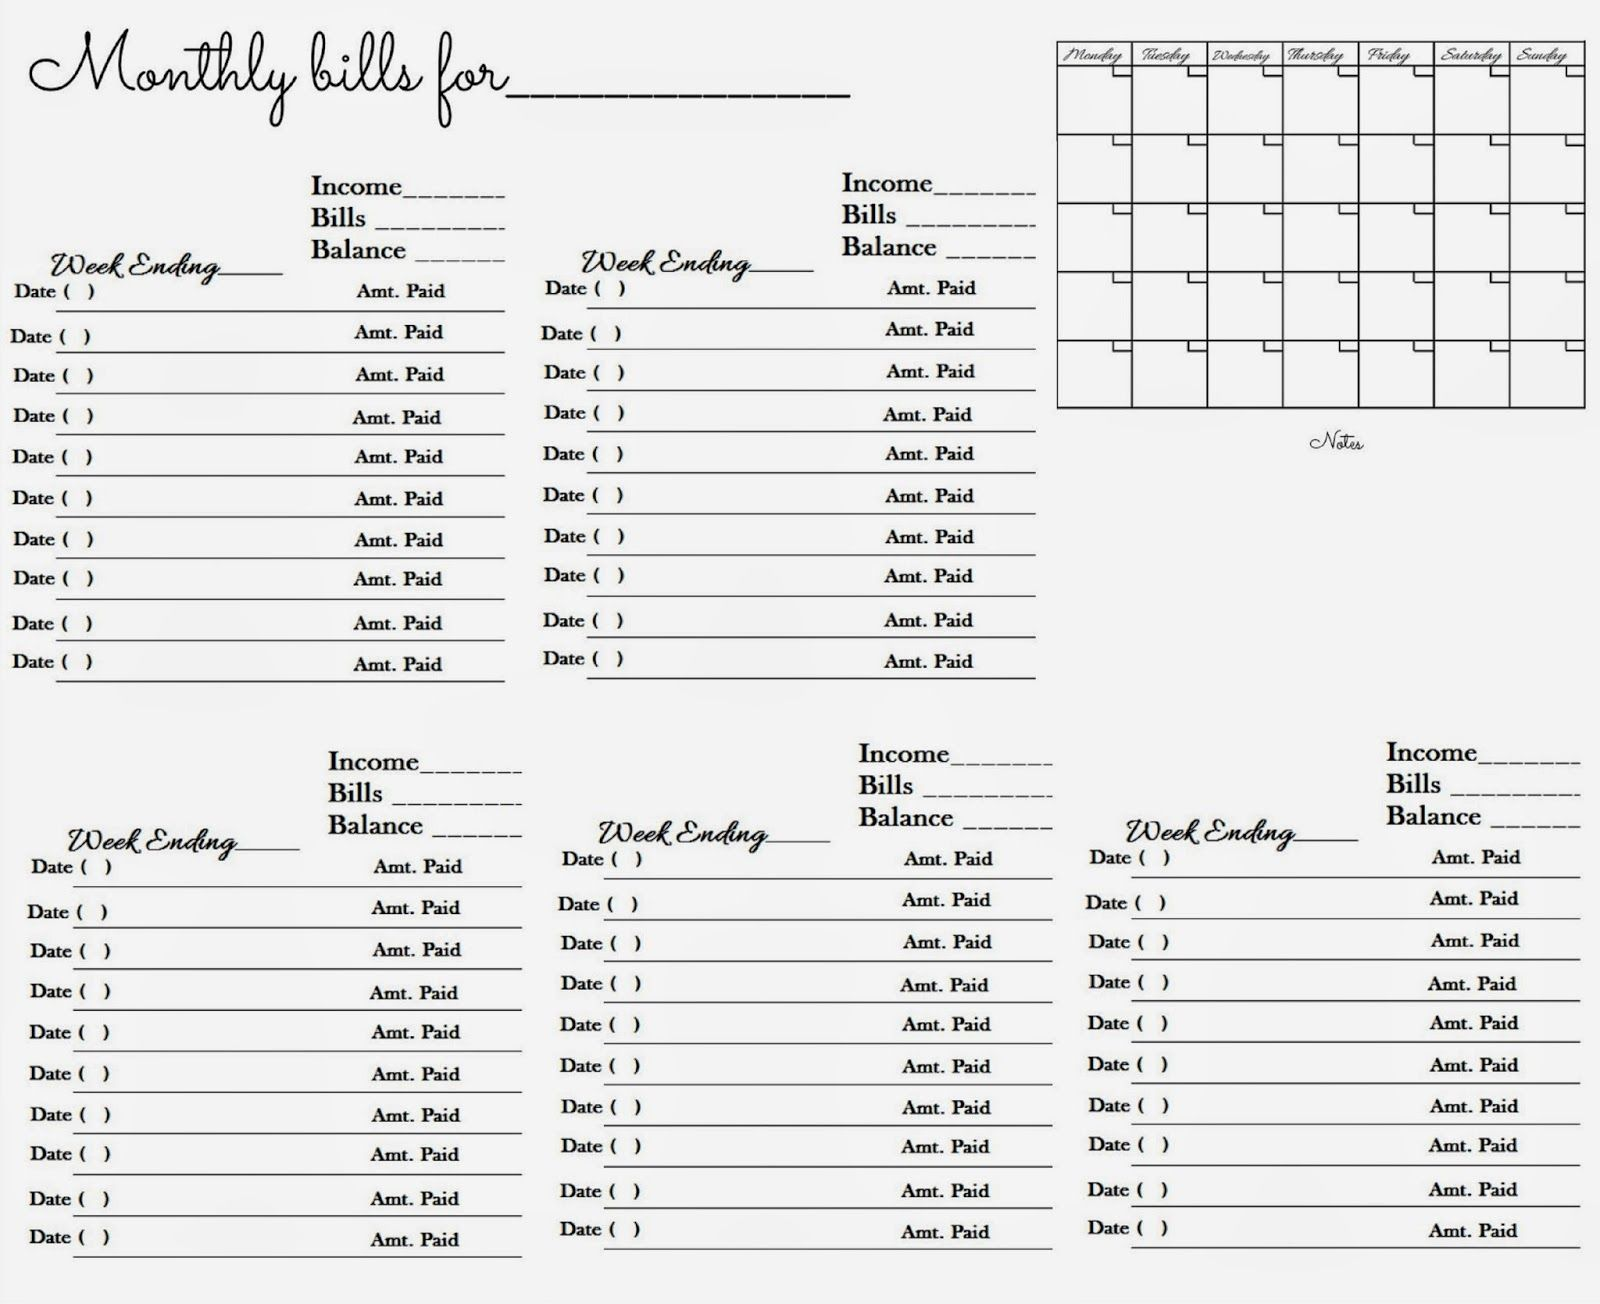 Worksheet To Keep Track Of Paid Monthly Bills